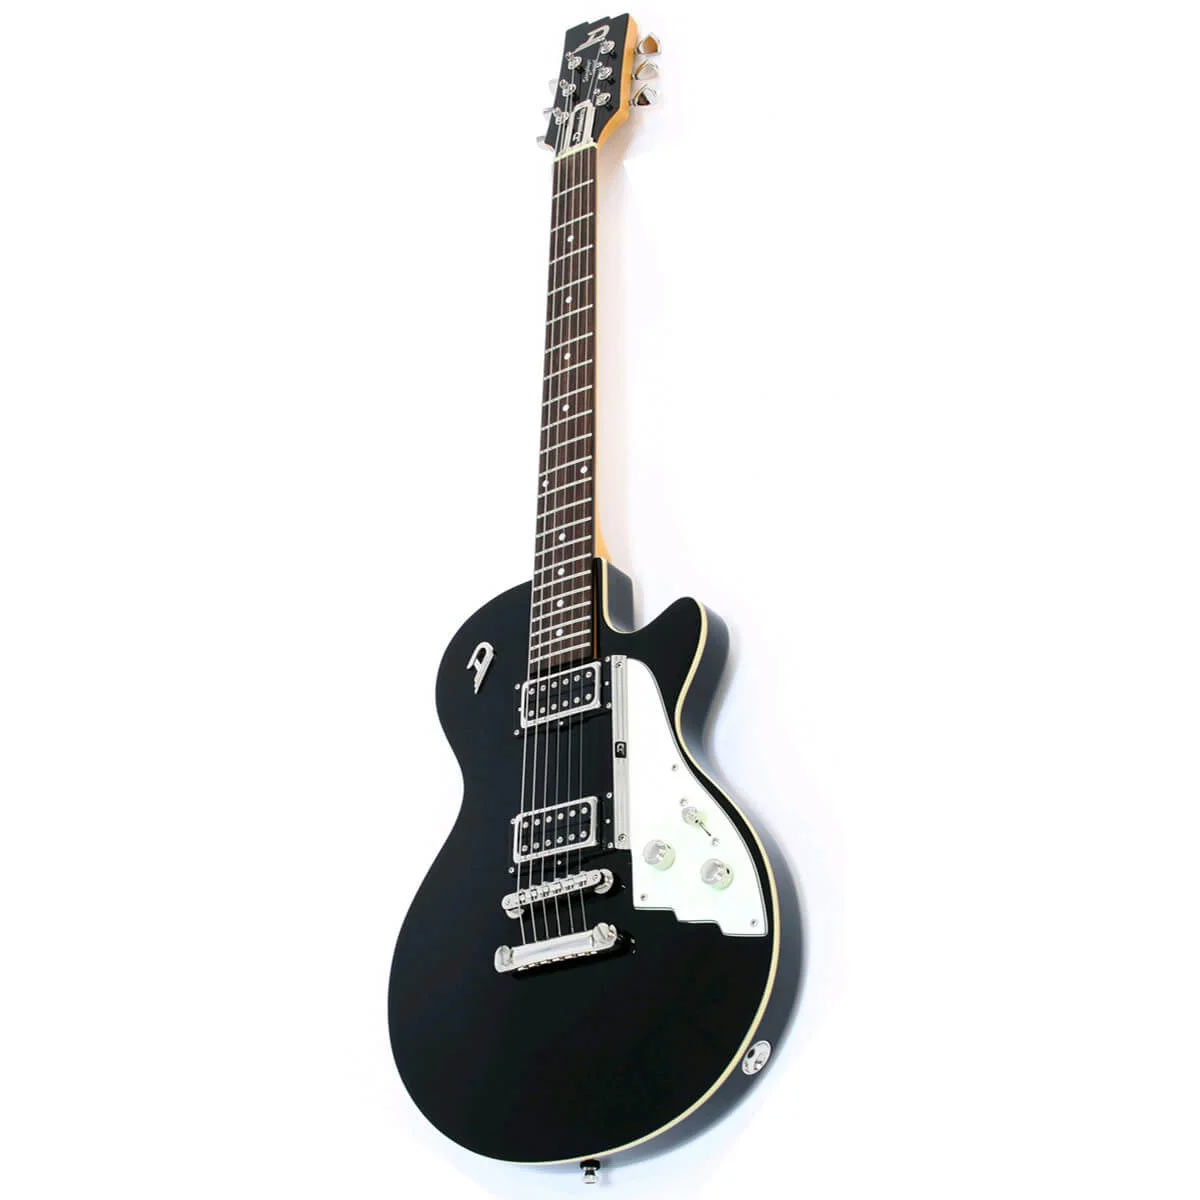 Duesenberg Starplayer Special Black - Guitarra eléctrica